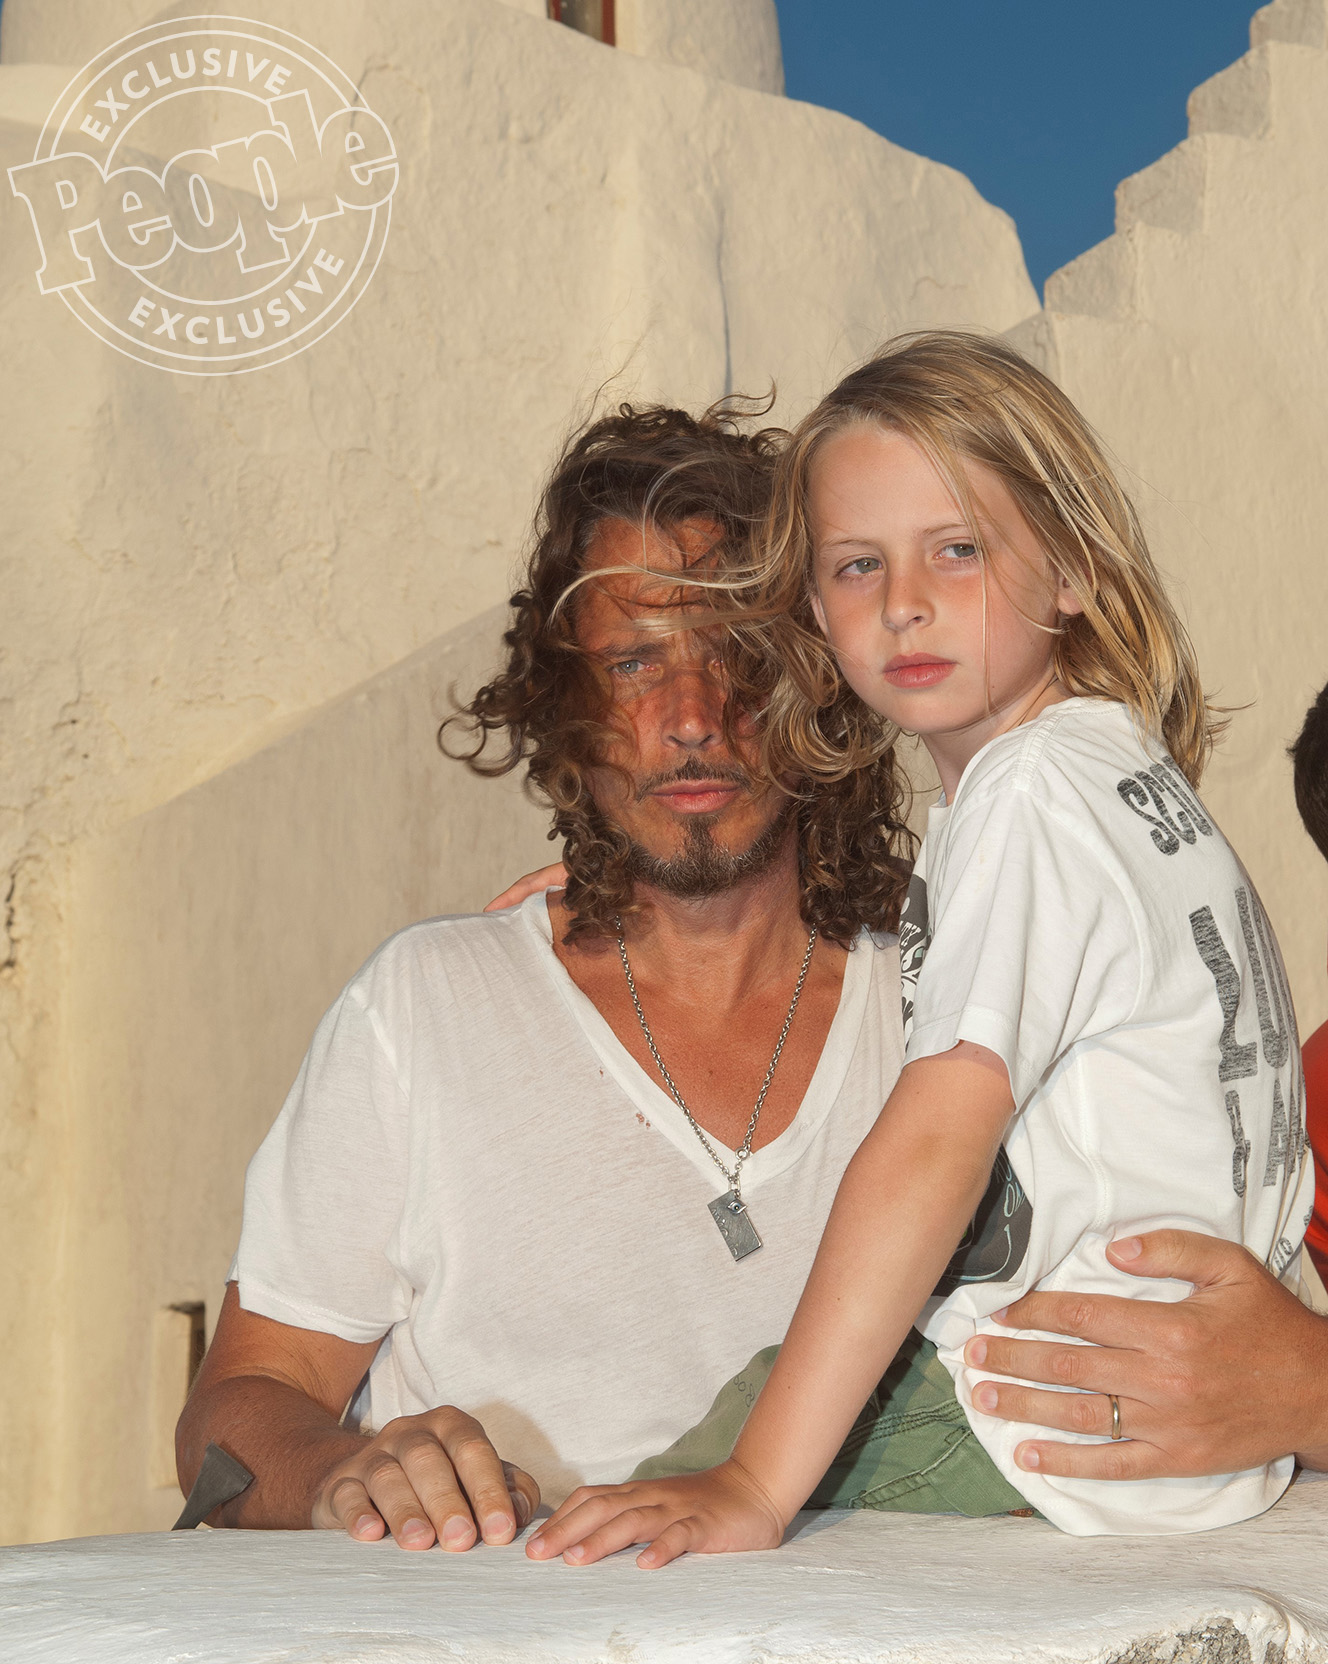 F:PHOTOMediaFactory ActionsRequests DropBox47820#Vicky Cornell1Chris and Christopher 2012 Mykonos.jpg